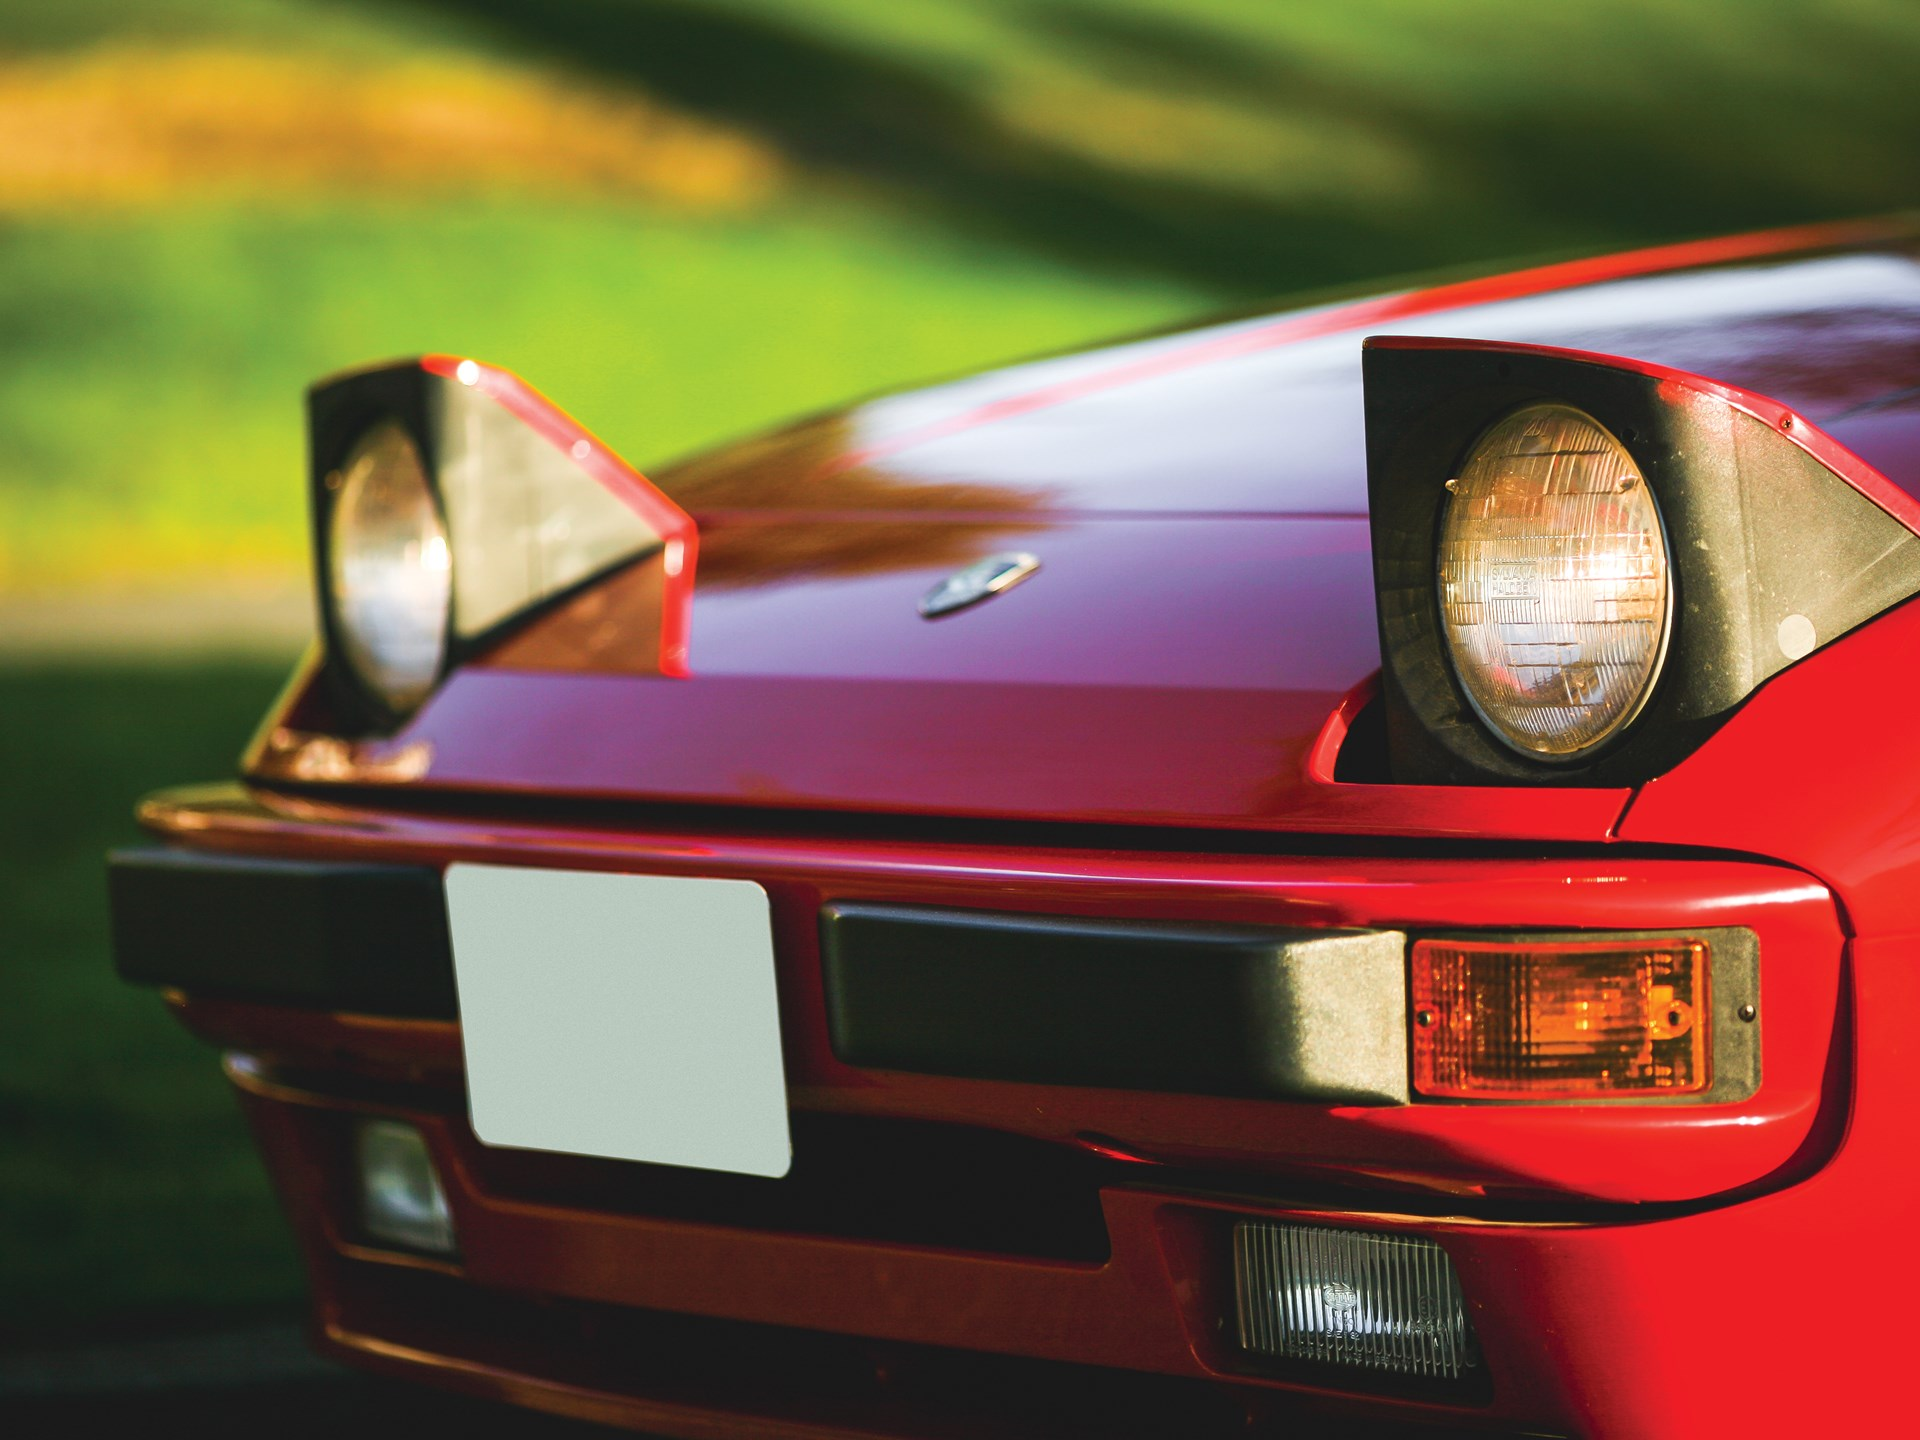 1984 Porsche 944 headlights up